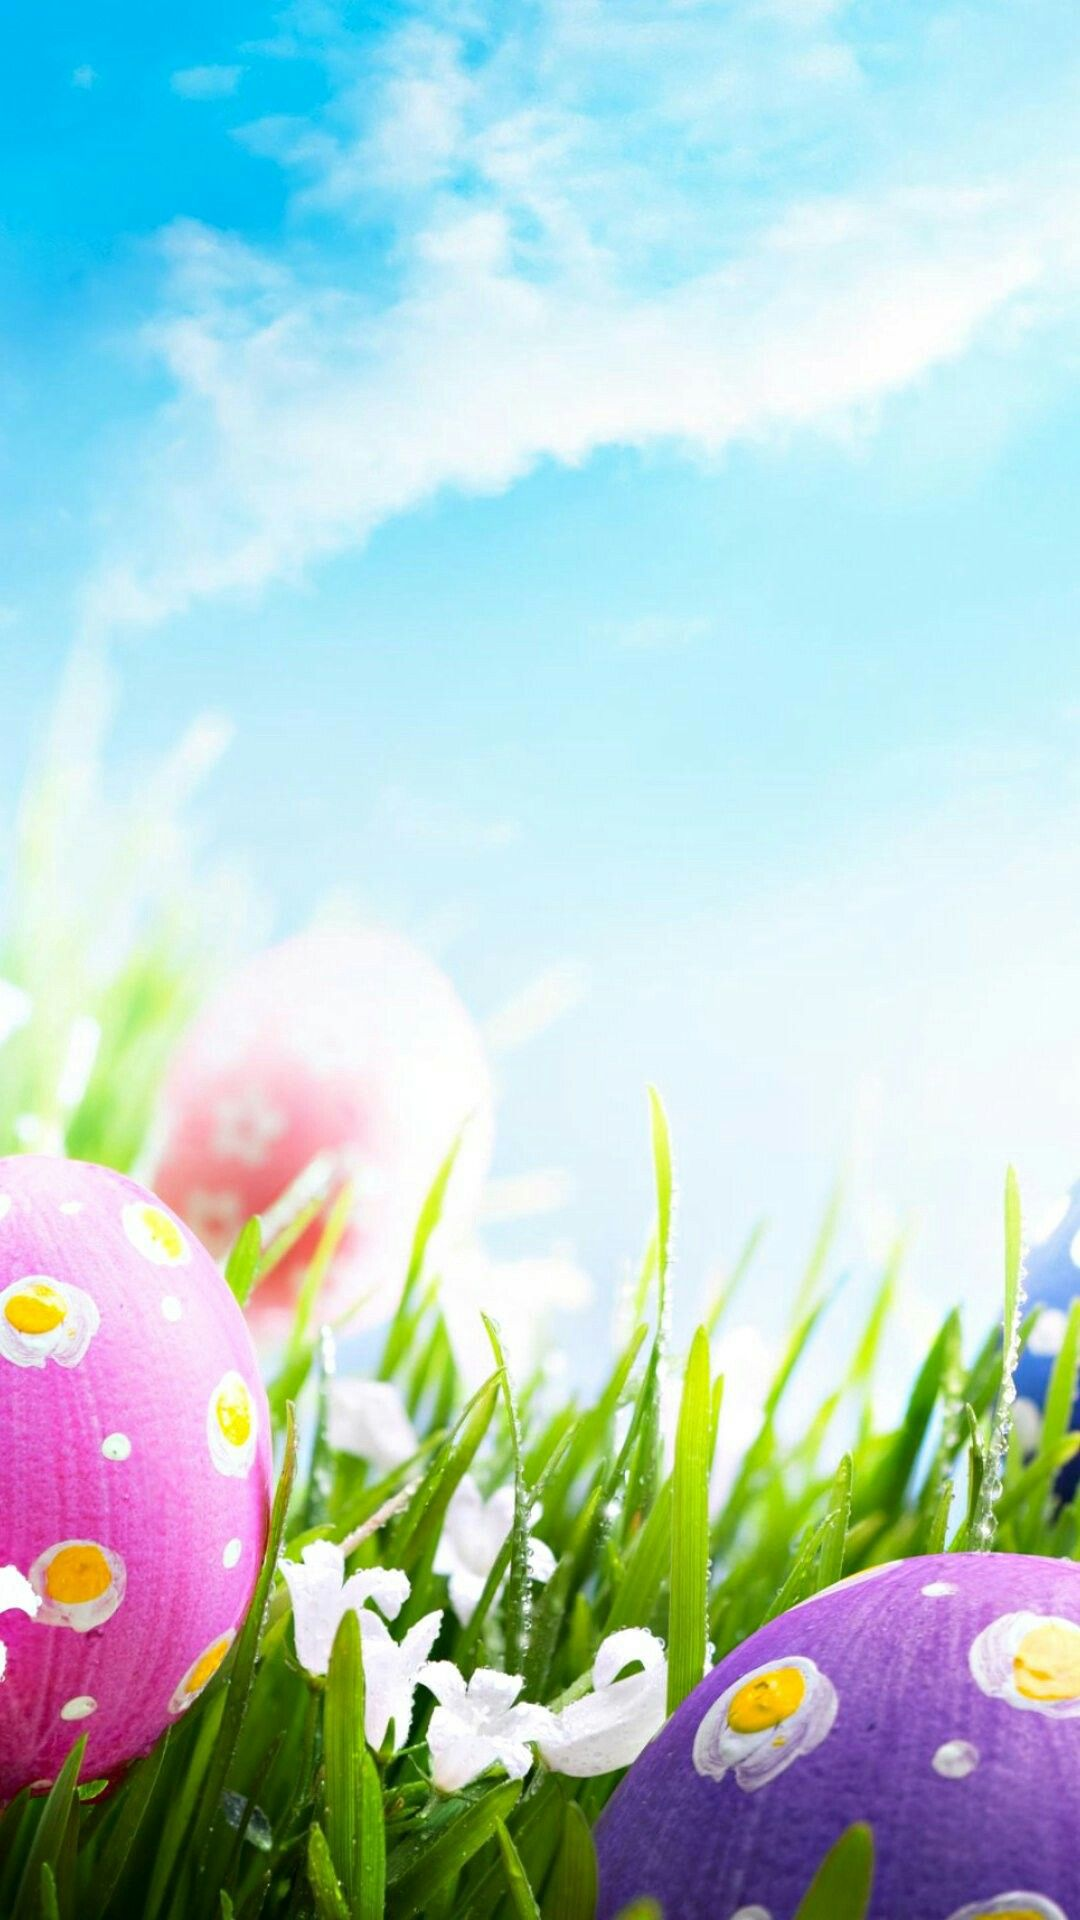 Pin By Geo Mcloco On Sarah Easter With Images Easter Wallpaper